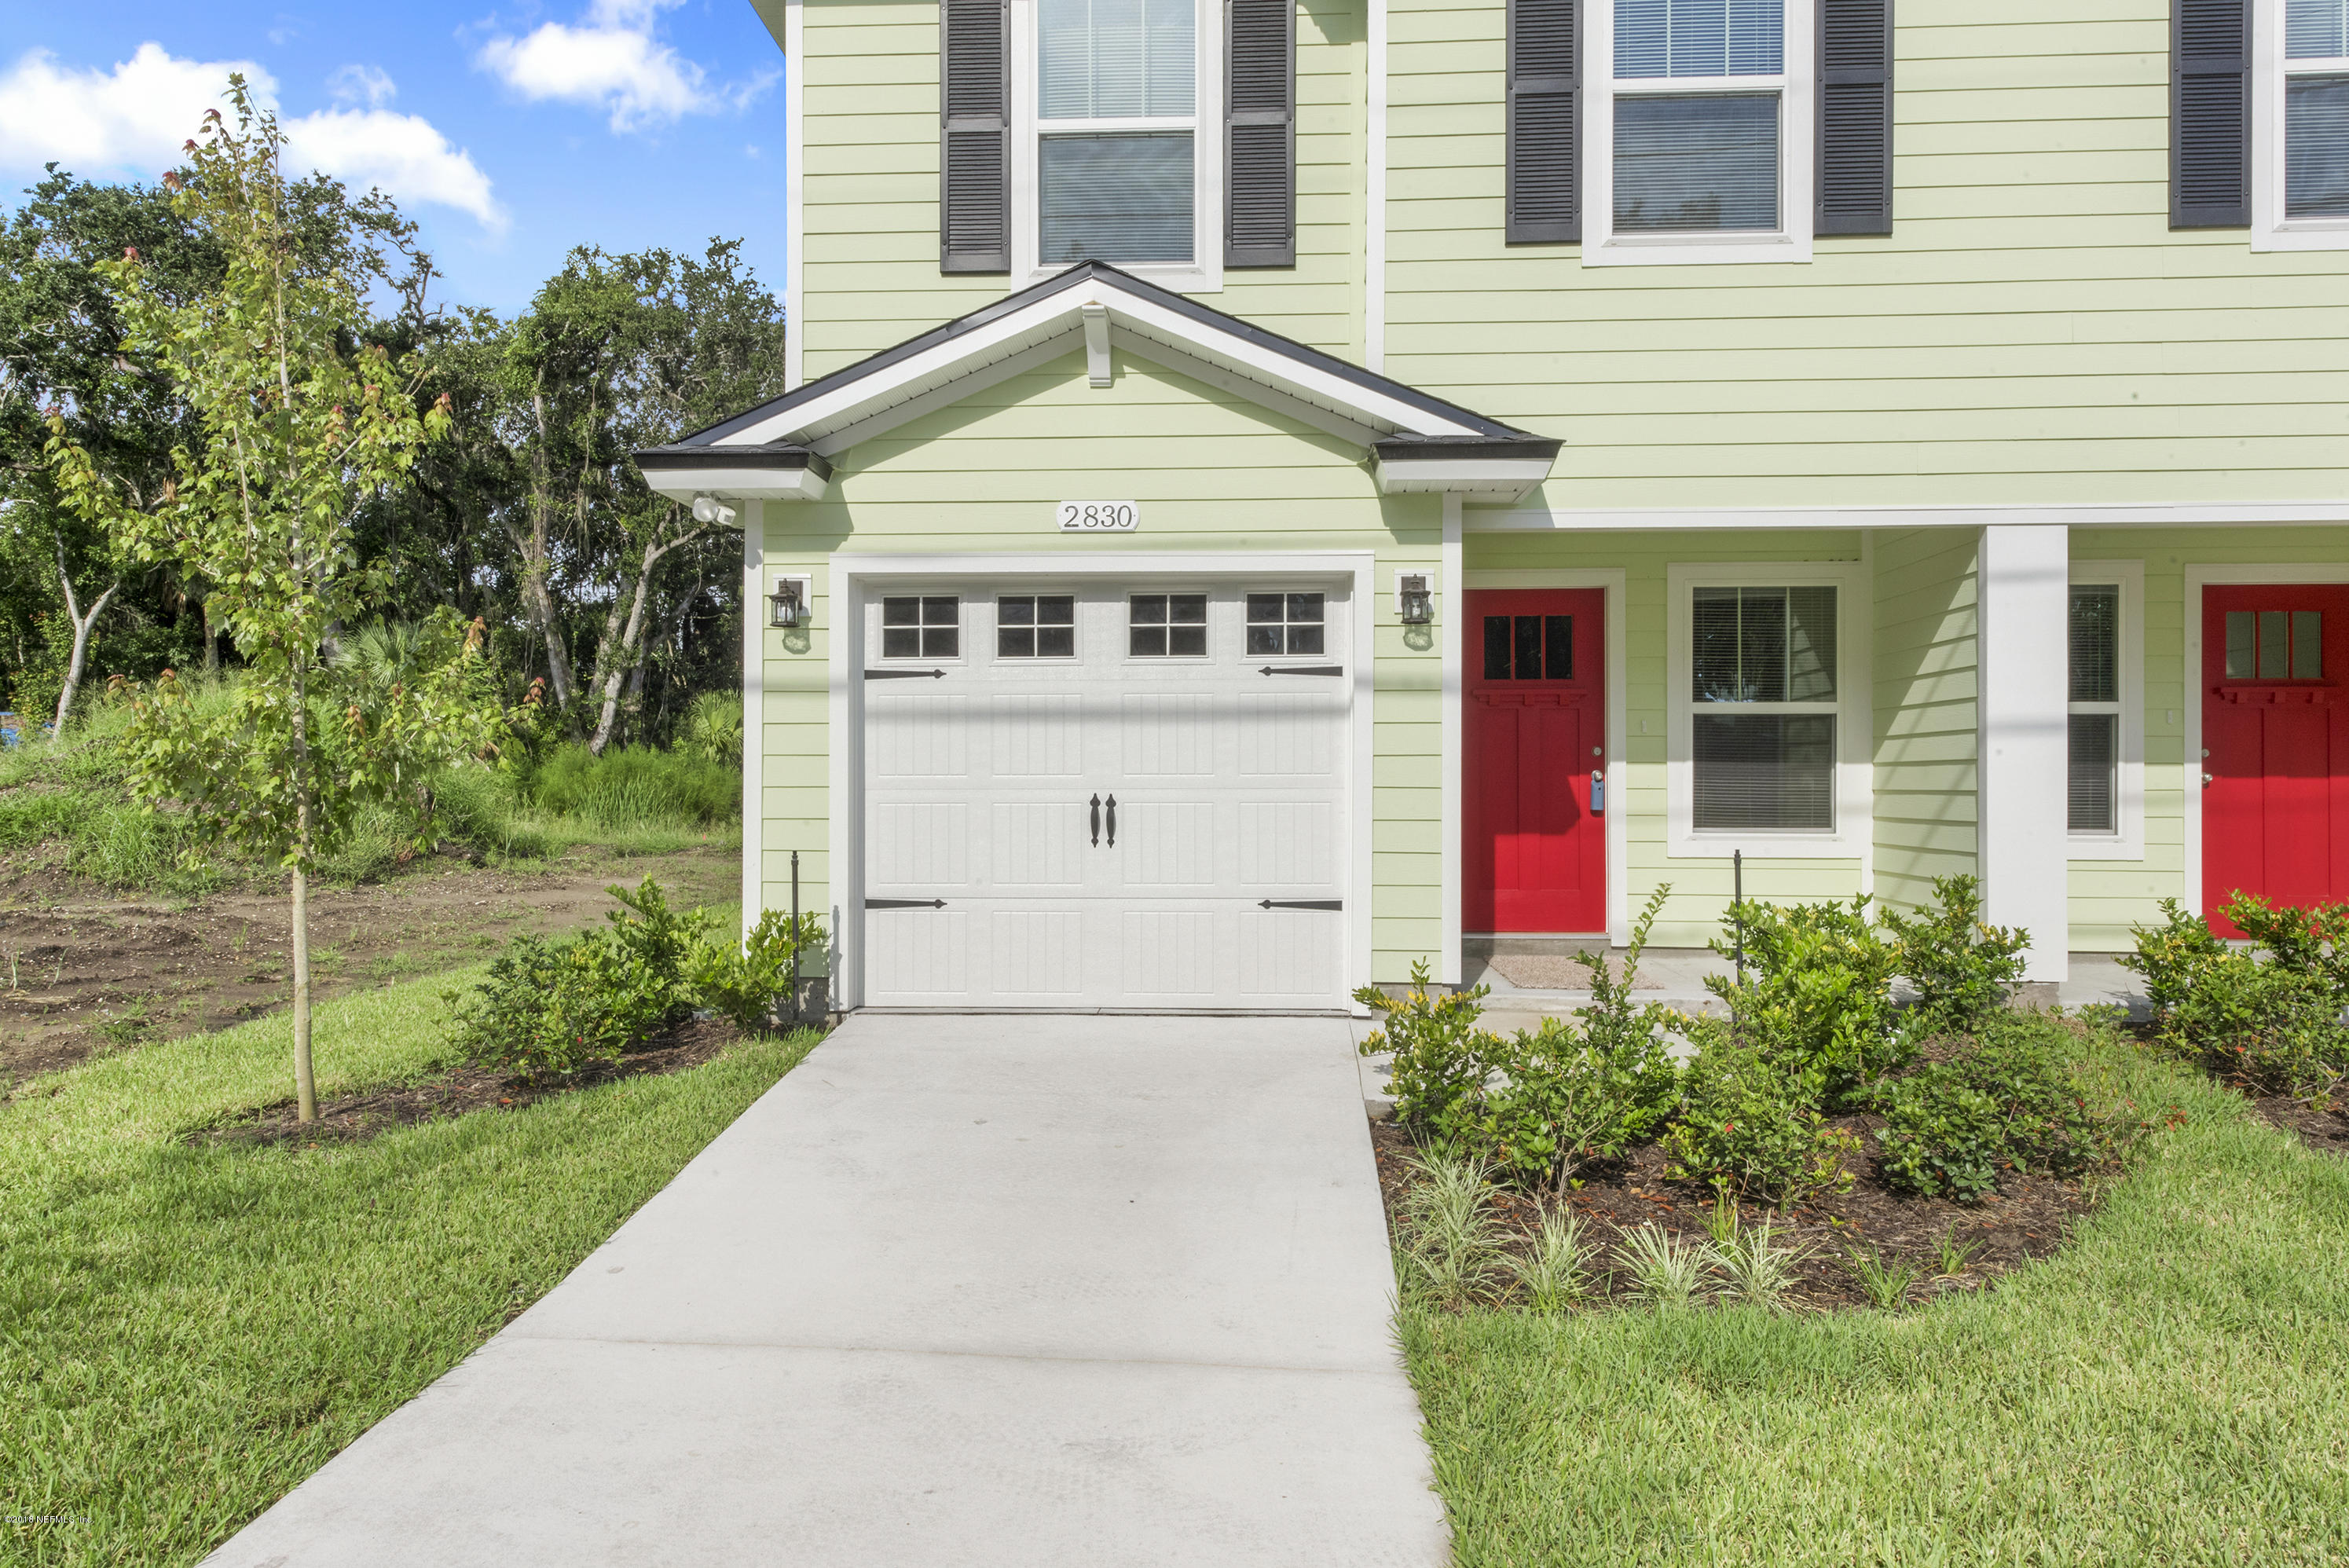 2832 SHANGRI LA, JACKSONVILLE, FLORIDA 32233, 4 Bedrooms Bedrooms, ,2 BathroomsBathrooms,Residential - townhome,For sale,SHANGRI LA,951549